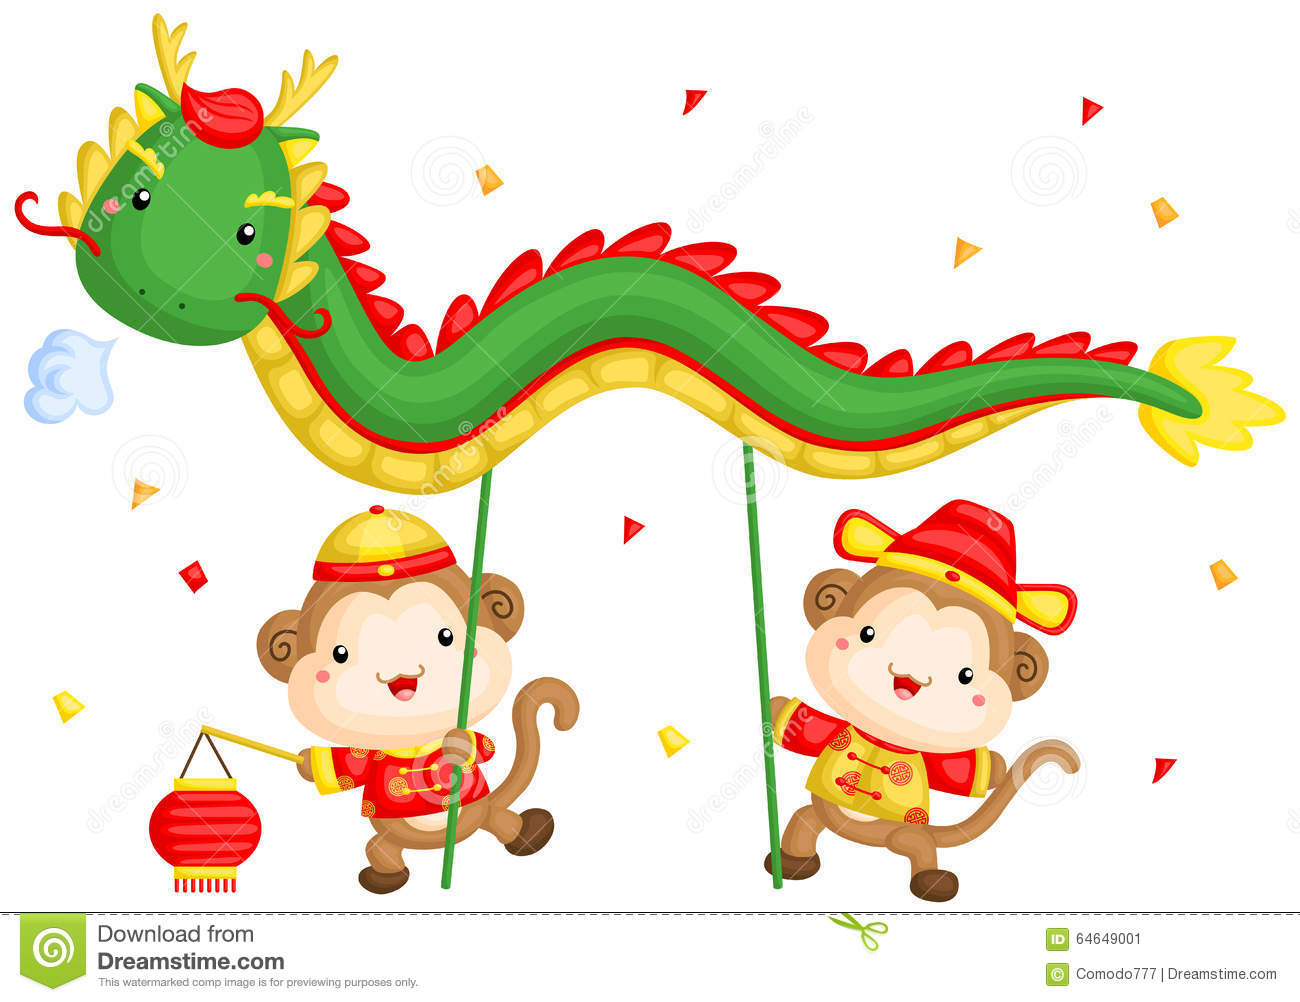 Monkey Chinese New Year Dragon Dance Stock Vector - Image: 64649001